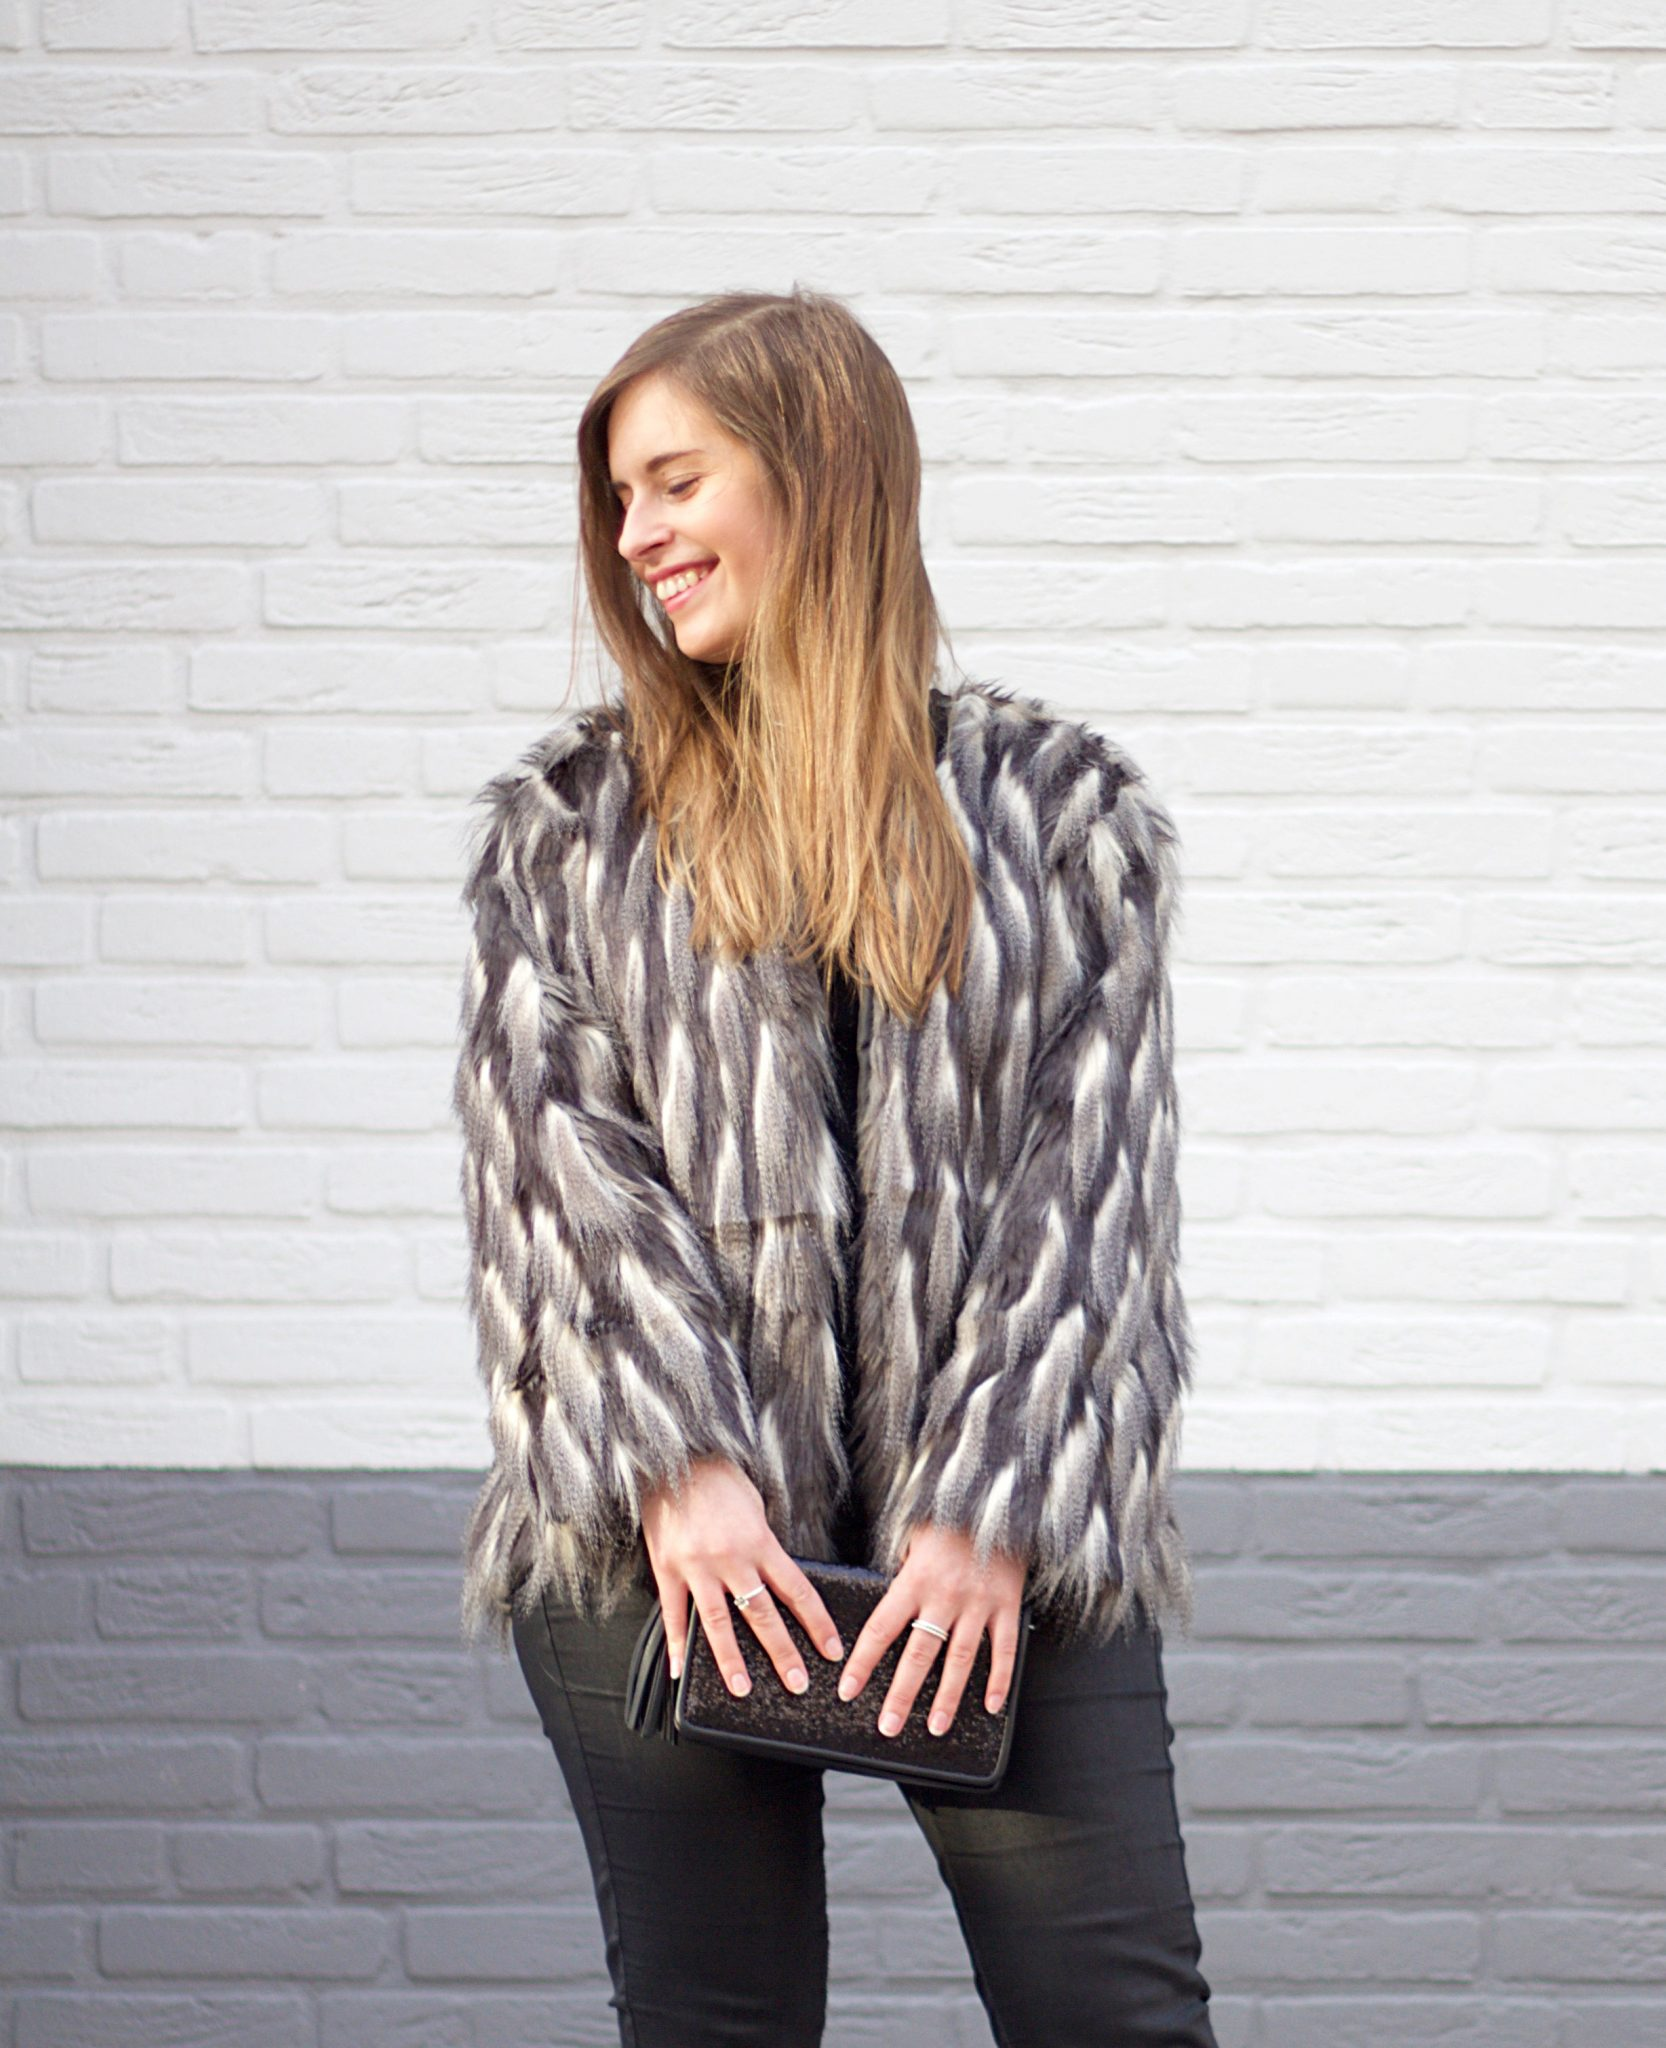 How to wear a Faux Fur coat